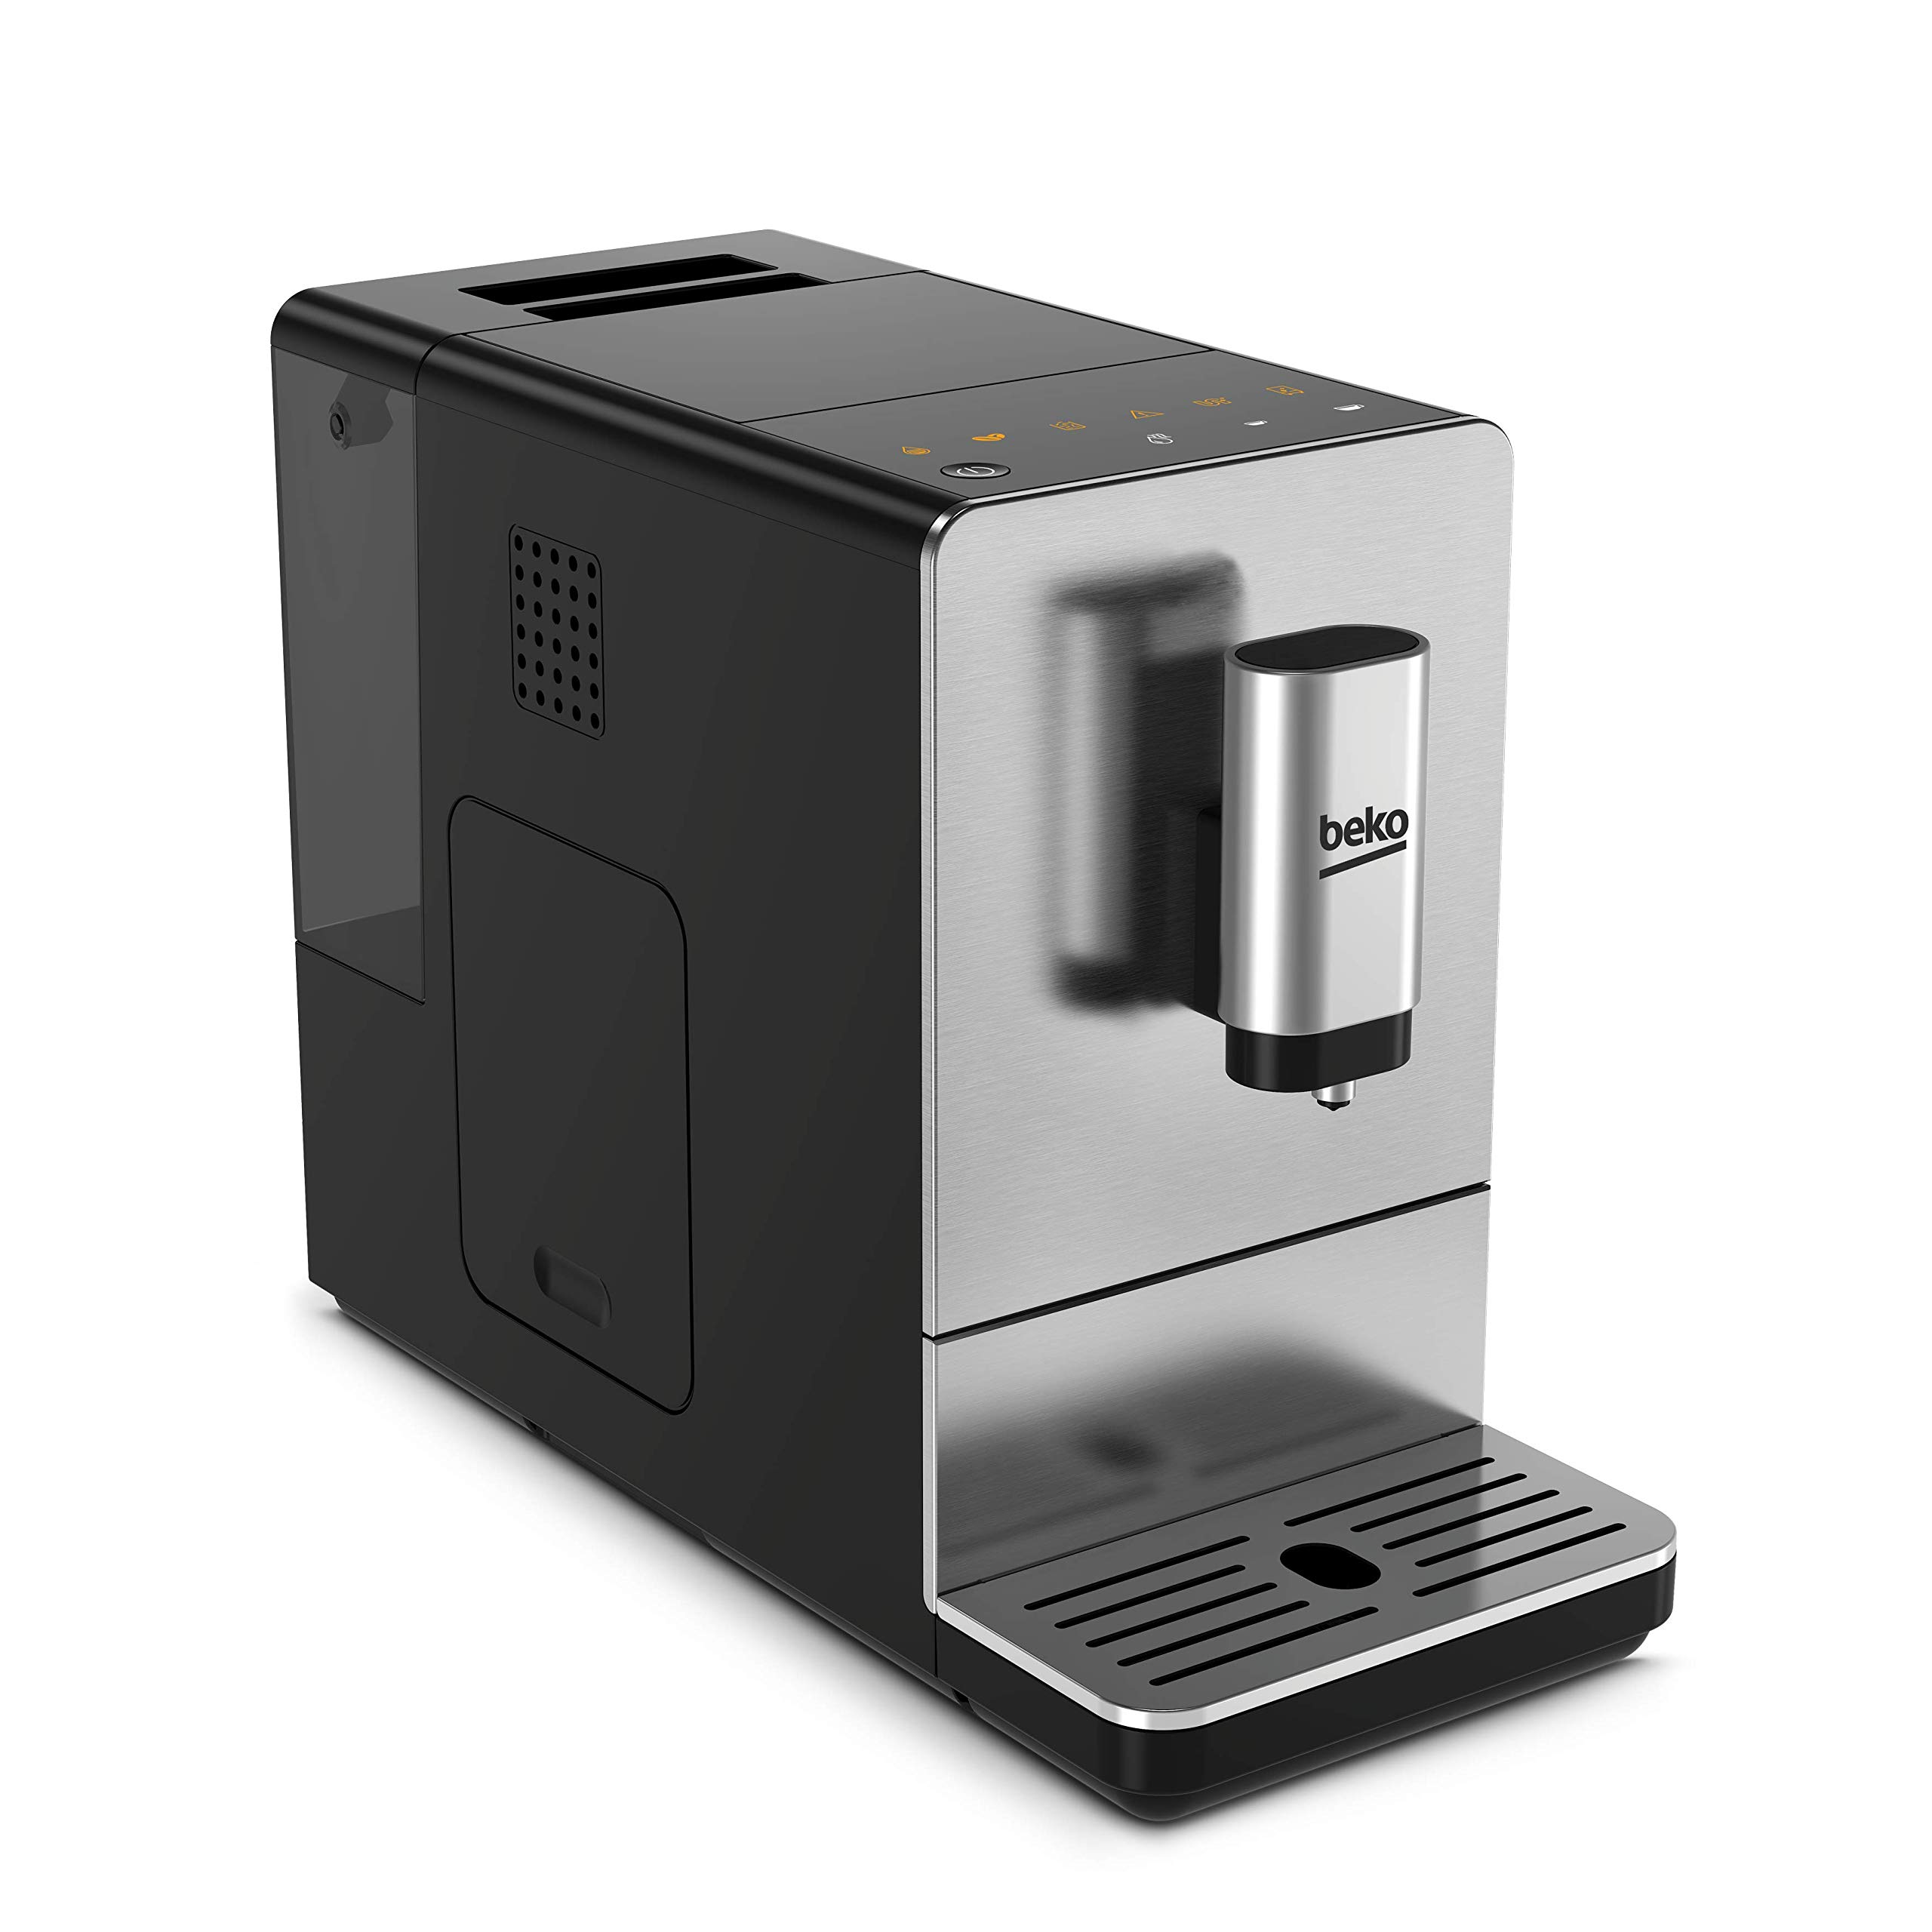 Beko CEG5301X - Cafetera (Independiente, Máquina espresso, 1,5 L, Molinillo integrado, 1350 W, Negro, Acero inoxidable): Amazon.es: Hogar